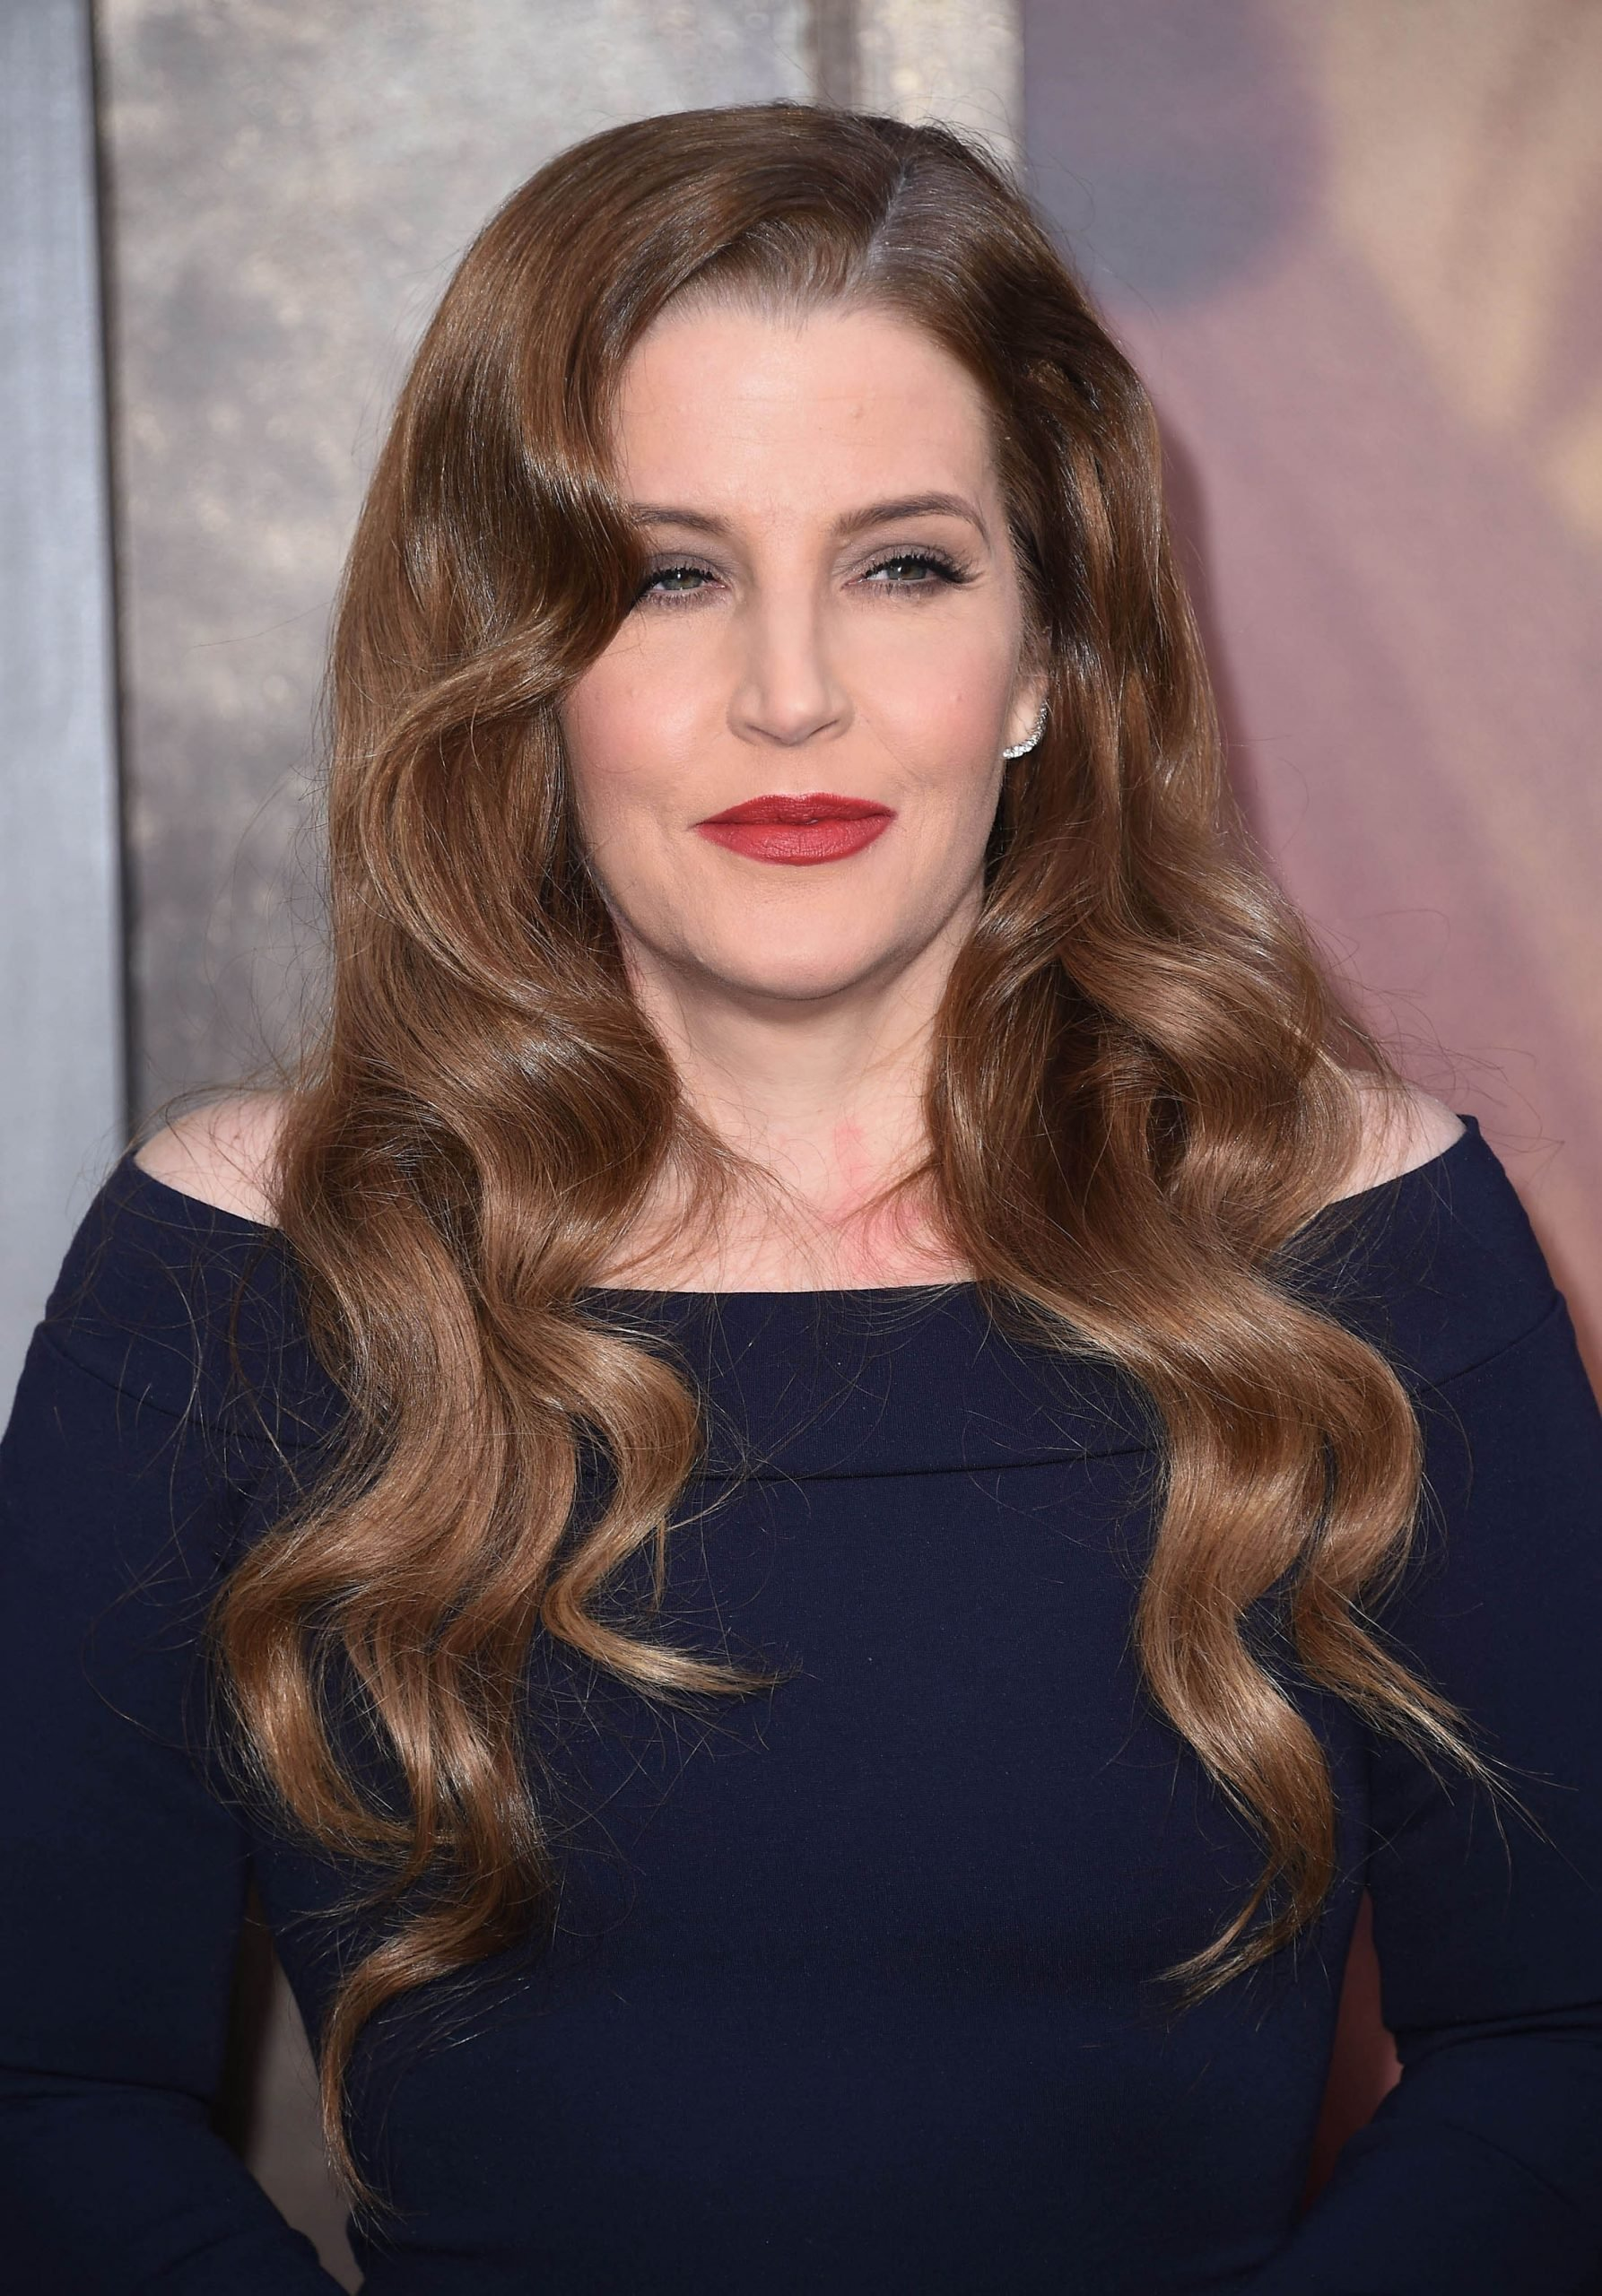 Lisa Marie Presley finds comfort and help from the father she knew only a short while